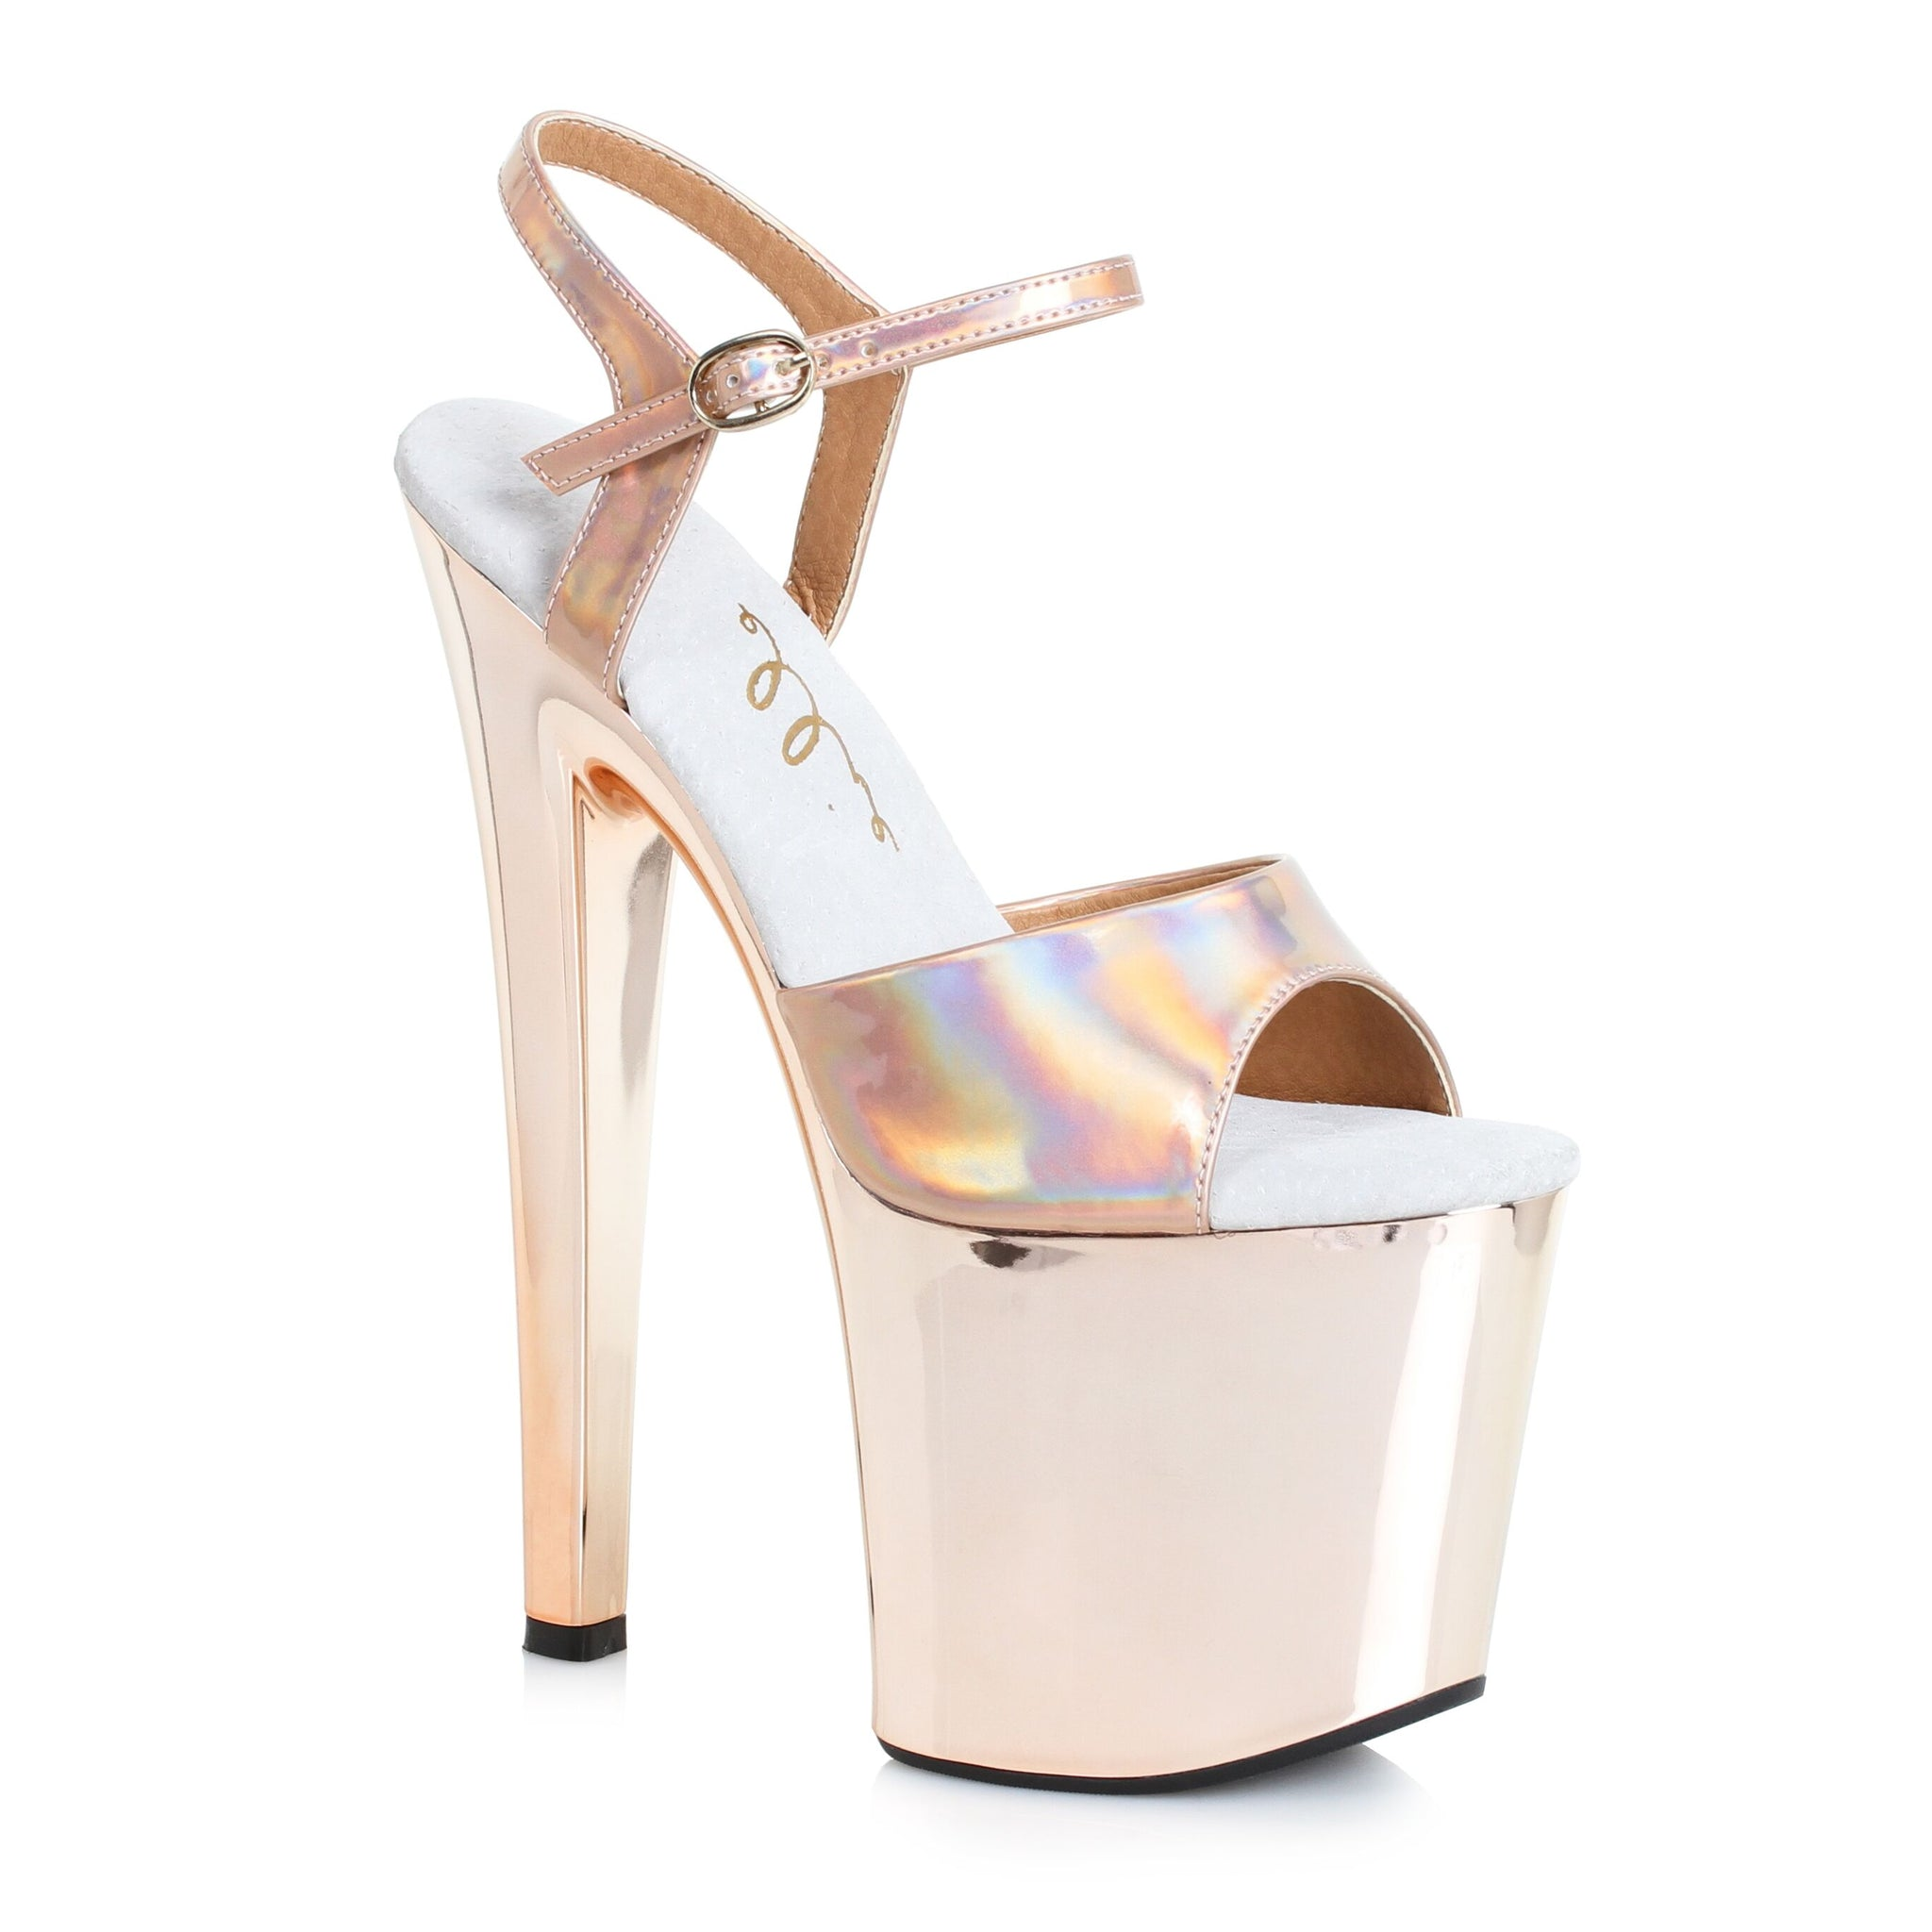 9f17424f09f Gold Ankle Strap Sandals Comes With 8 Inch Stiletto Heel Stripper Shoe